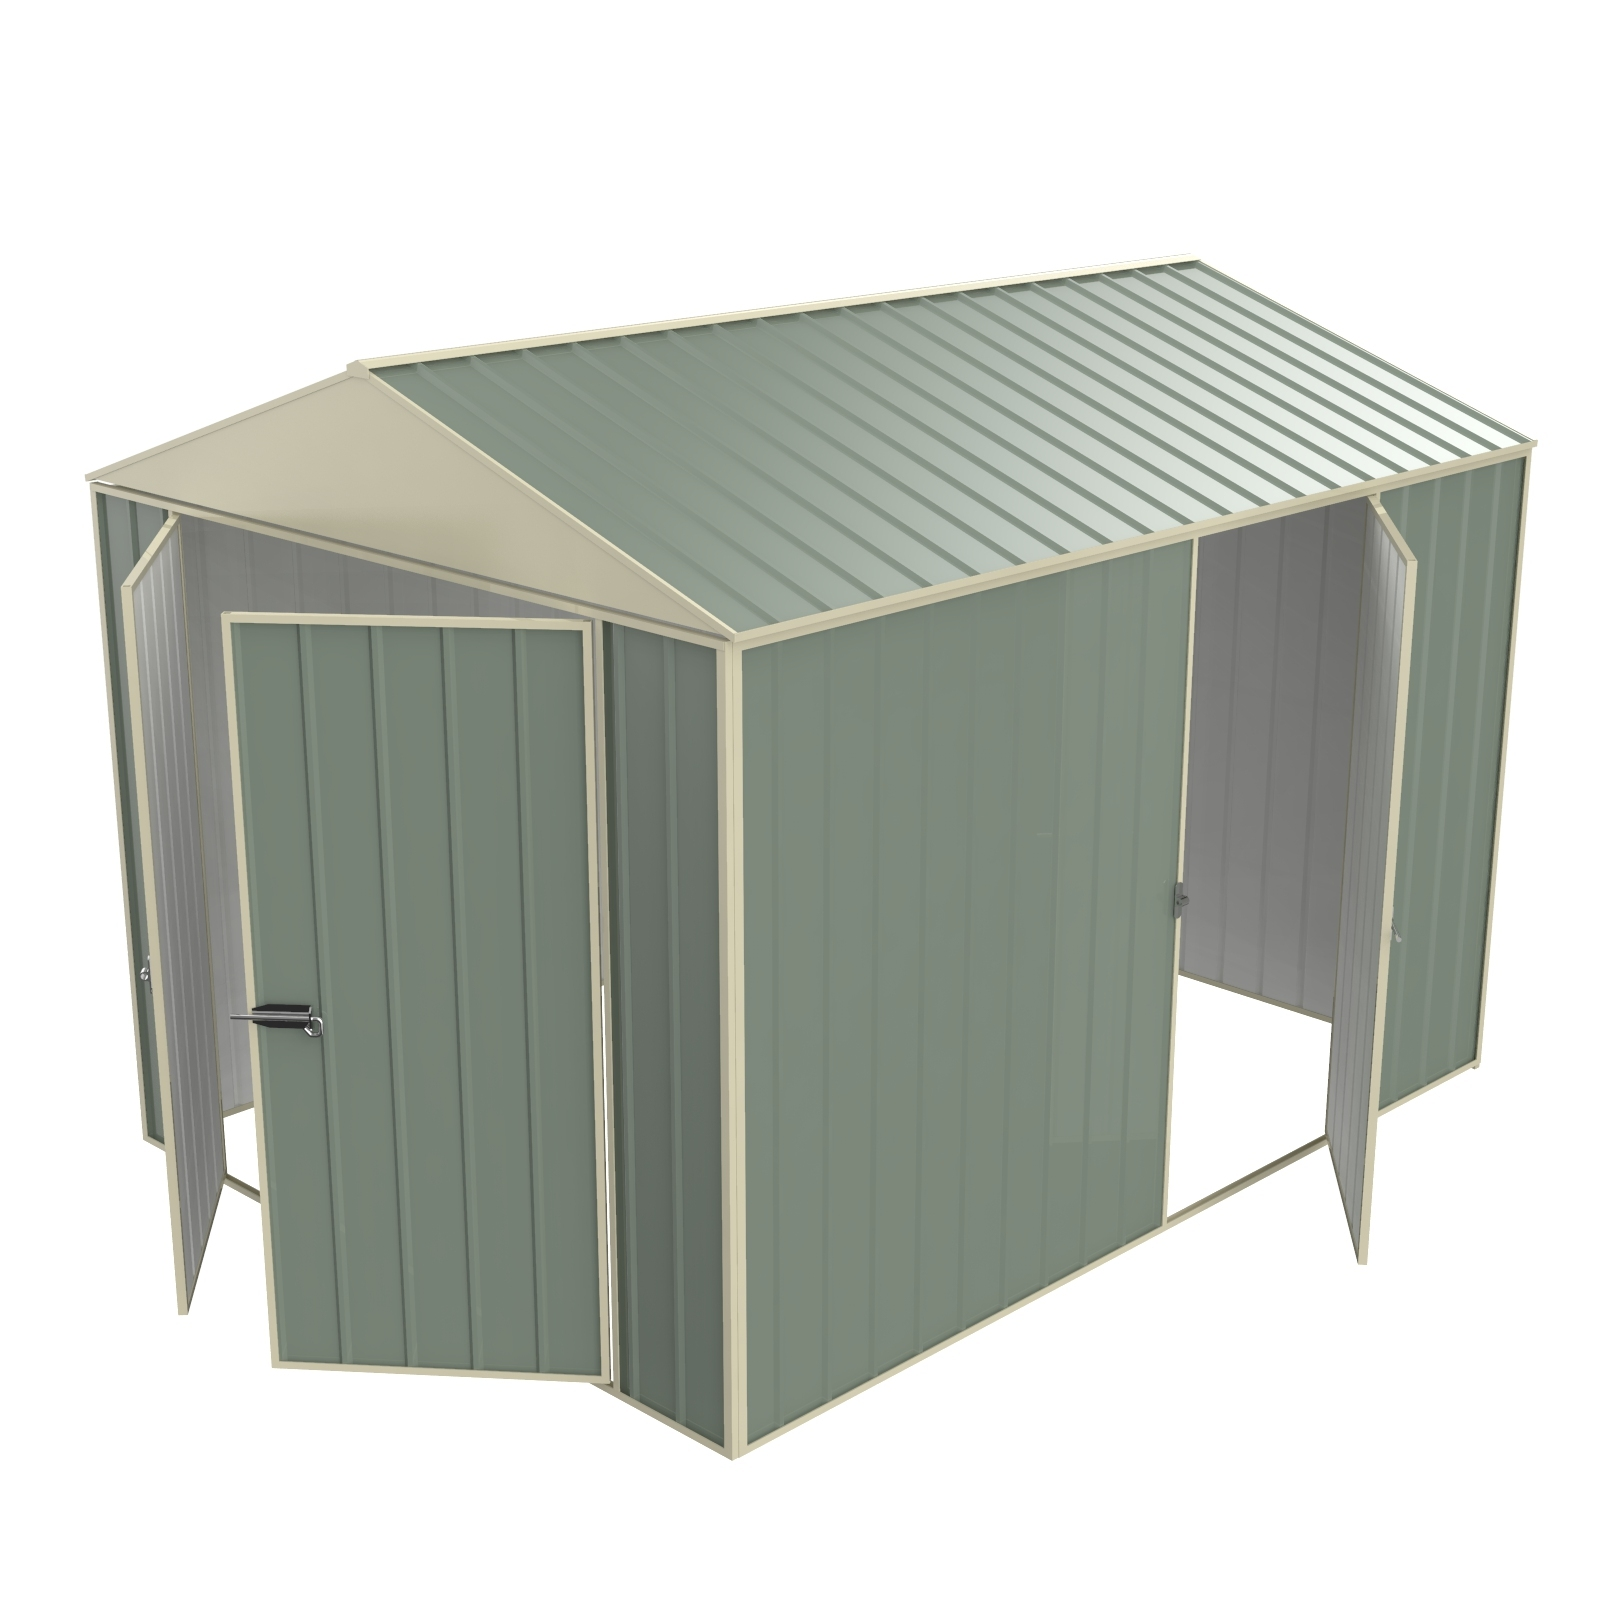 Build-a-Shed 2.3 x 3.0 x 2.3m Gable Single Hinged Side Door Shed - Green